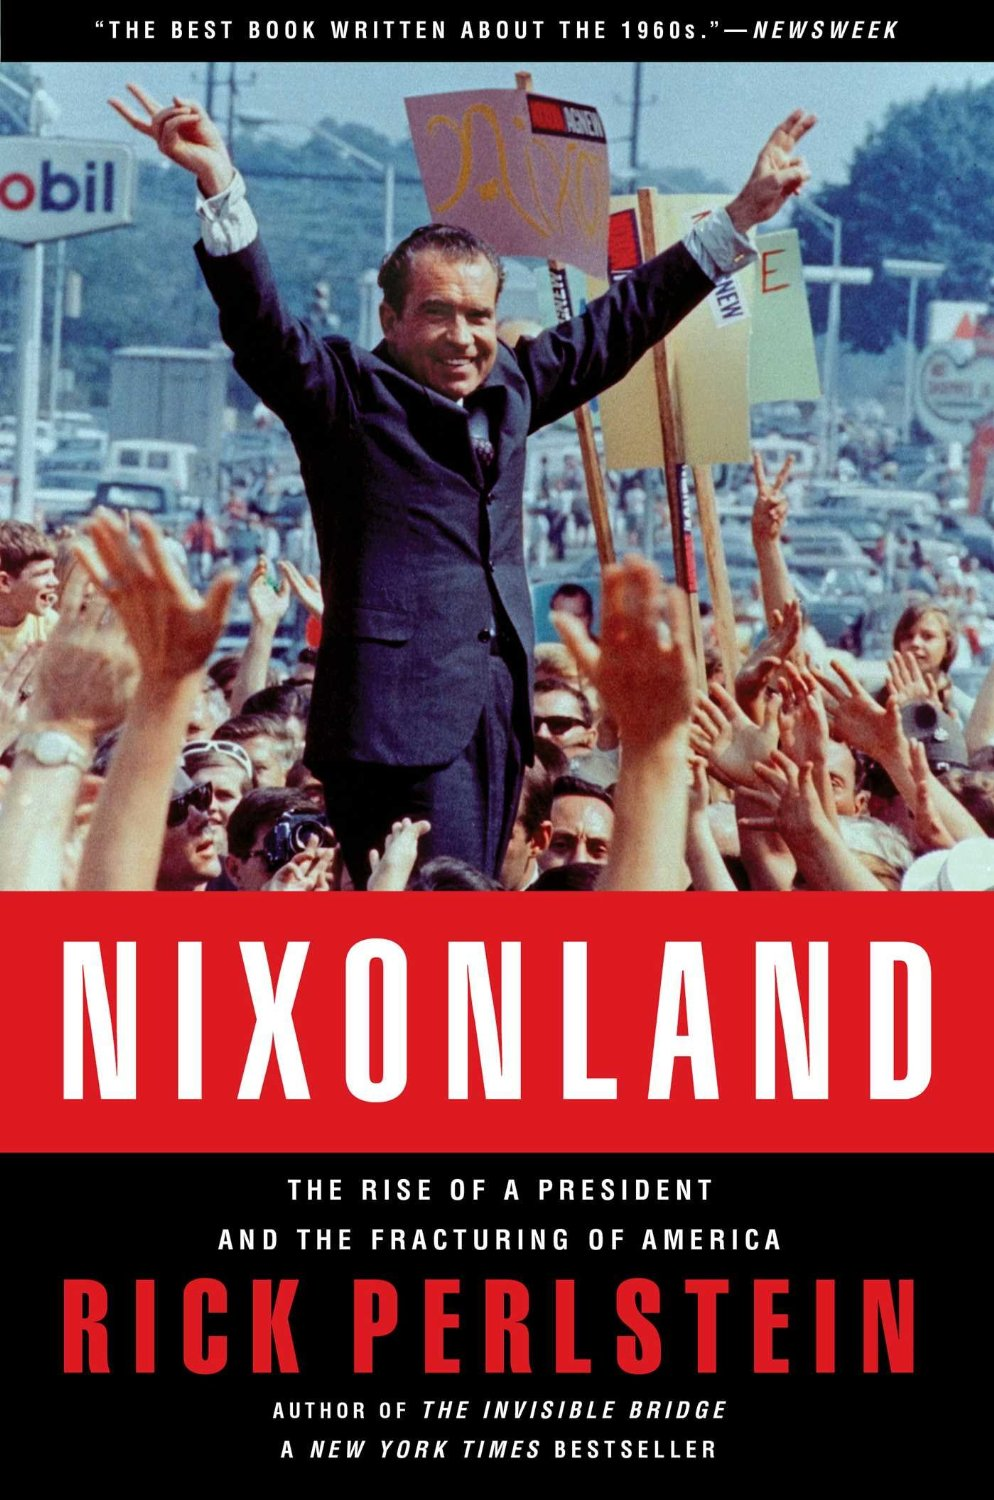 a review of us president richard anxious and his presidency Richard nixon, after his election to the presidency, decided to adopt a strategy and policy with the communist soviet union and china, that became known as detente, which means the relaxing of tensions between nations.